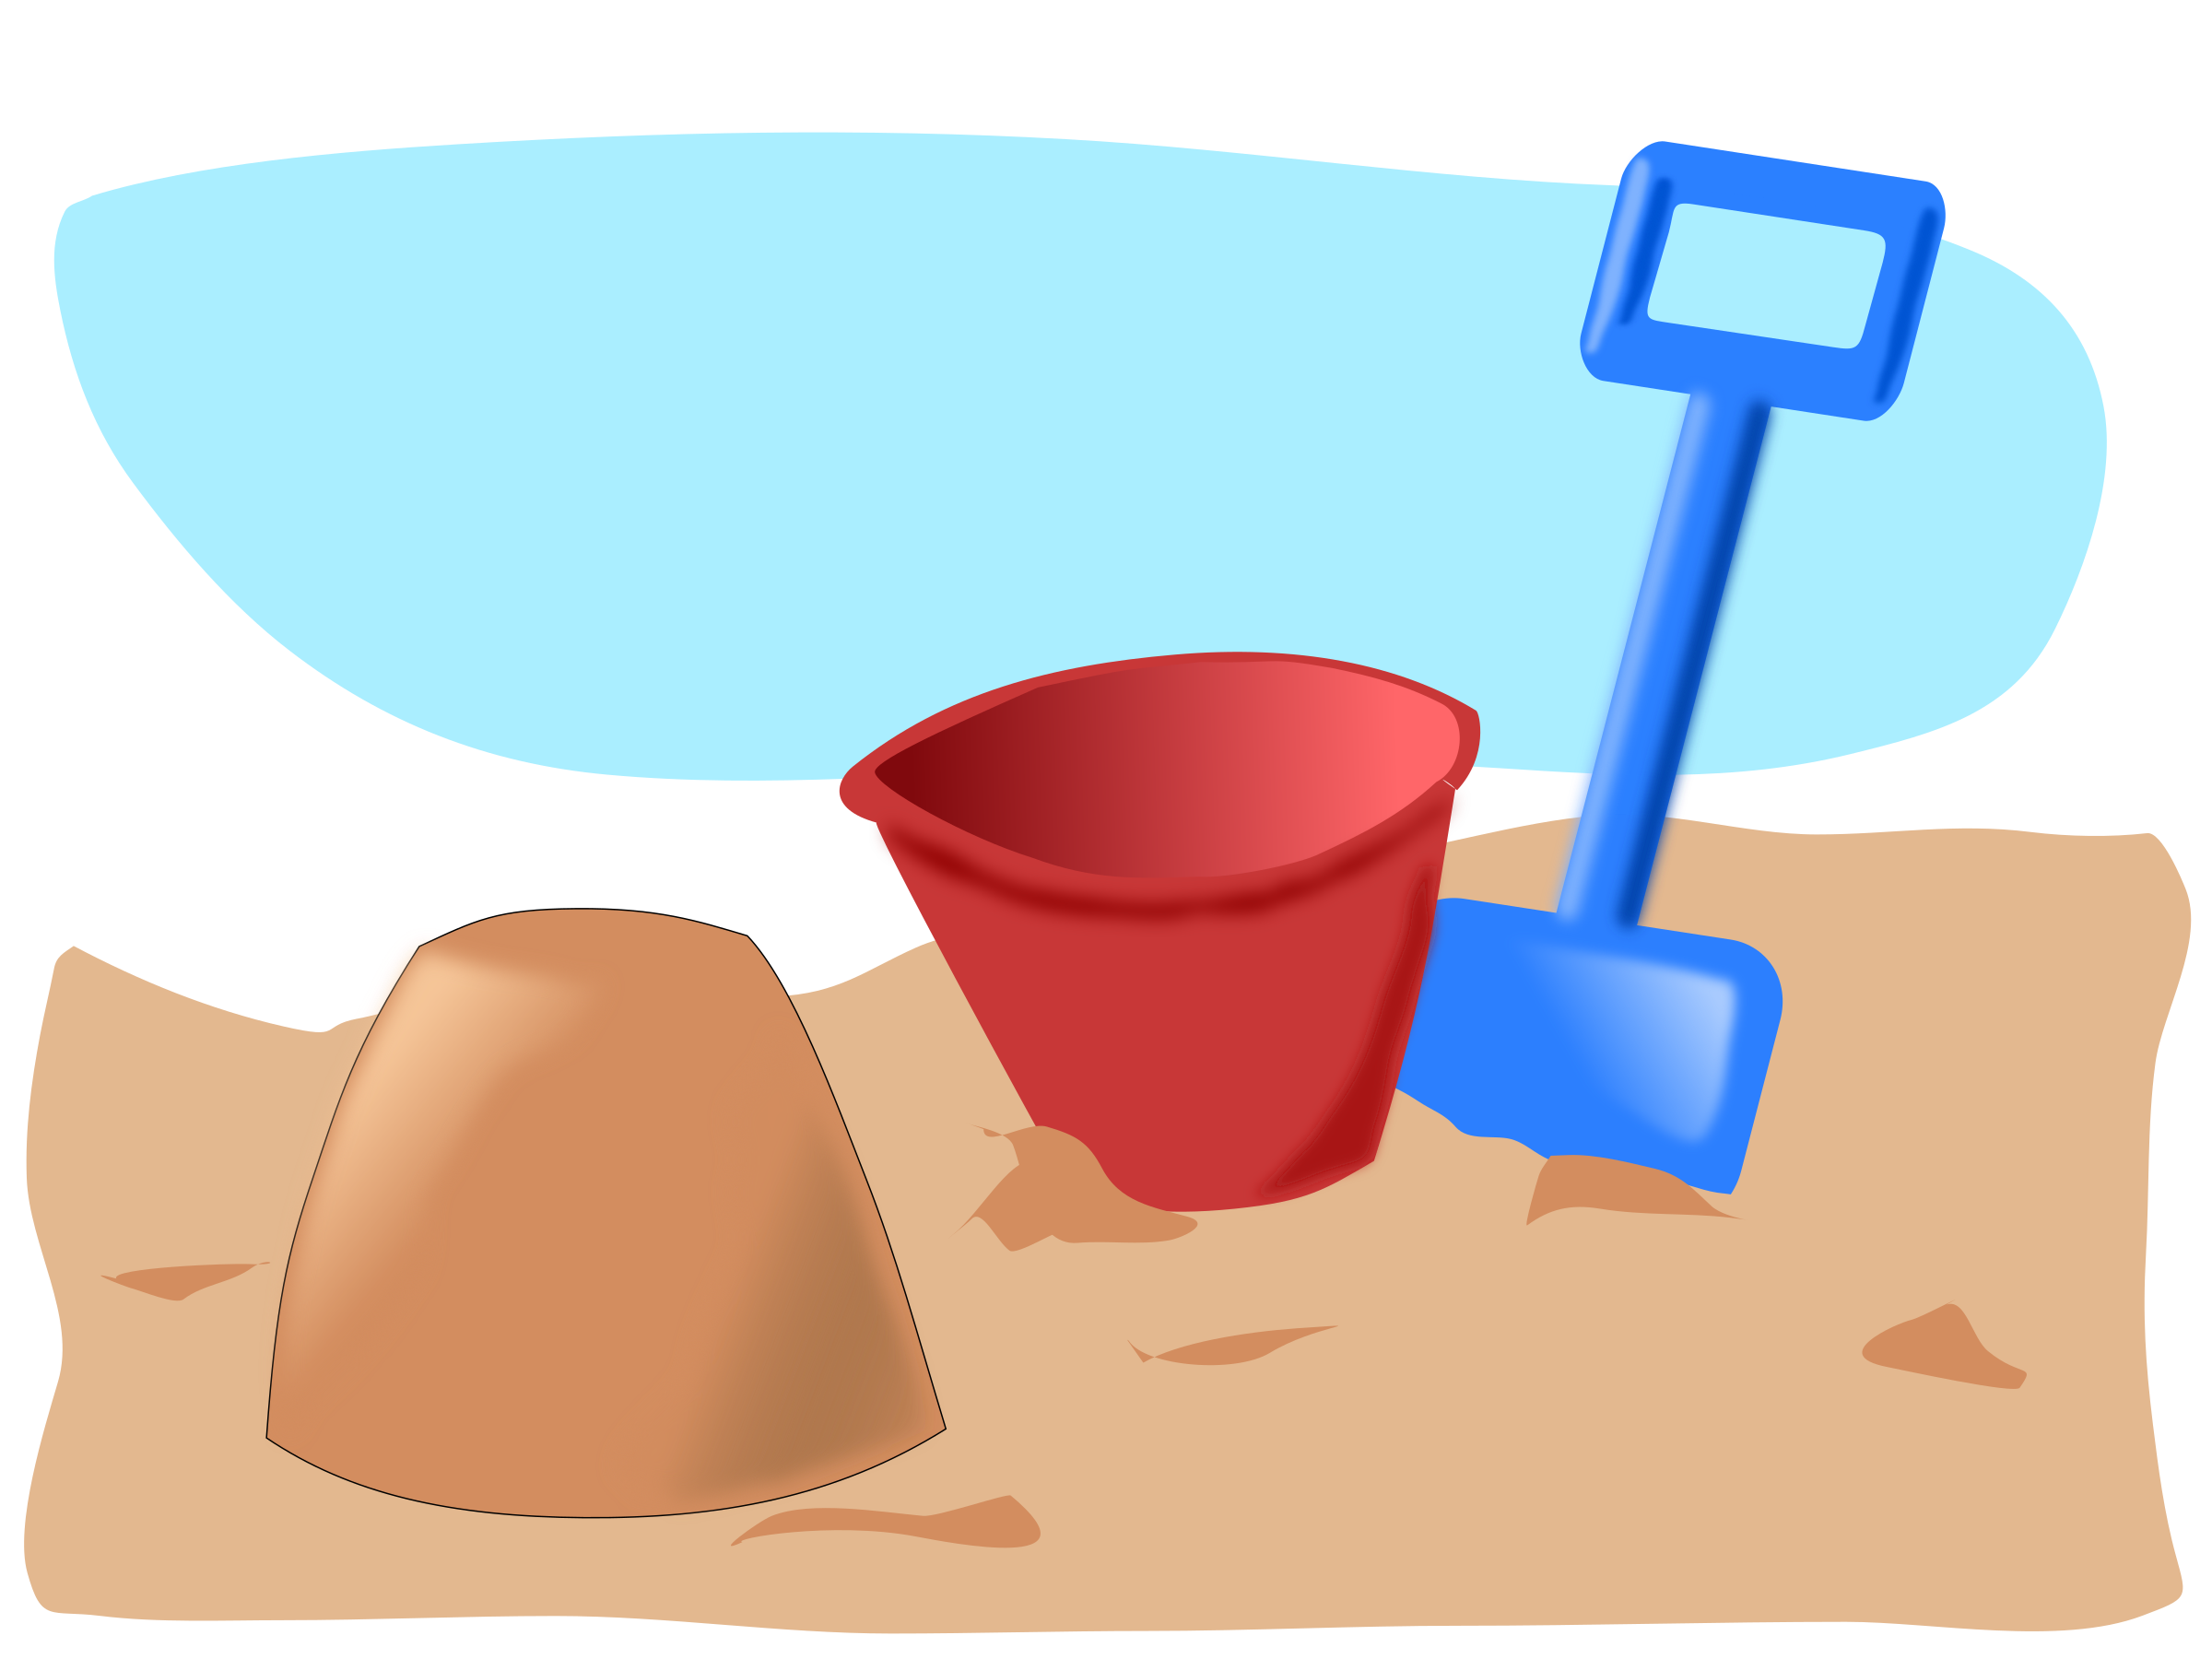 sandcastle 2 by addon